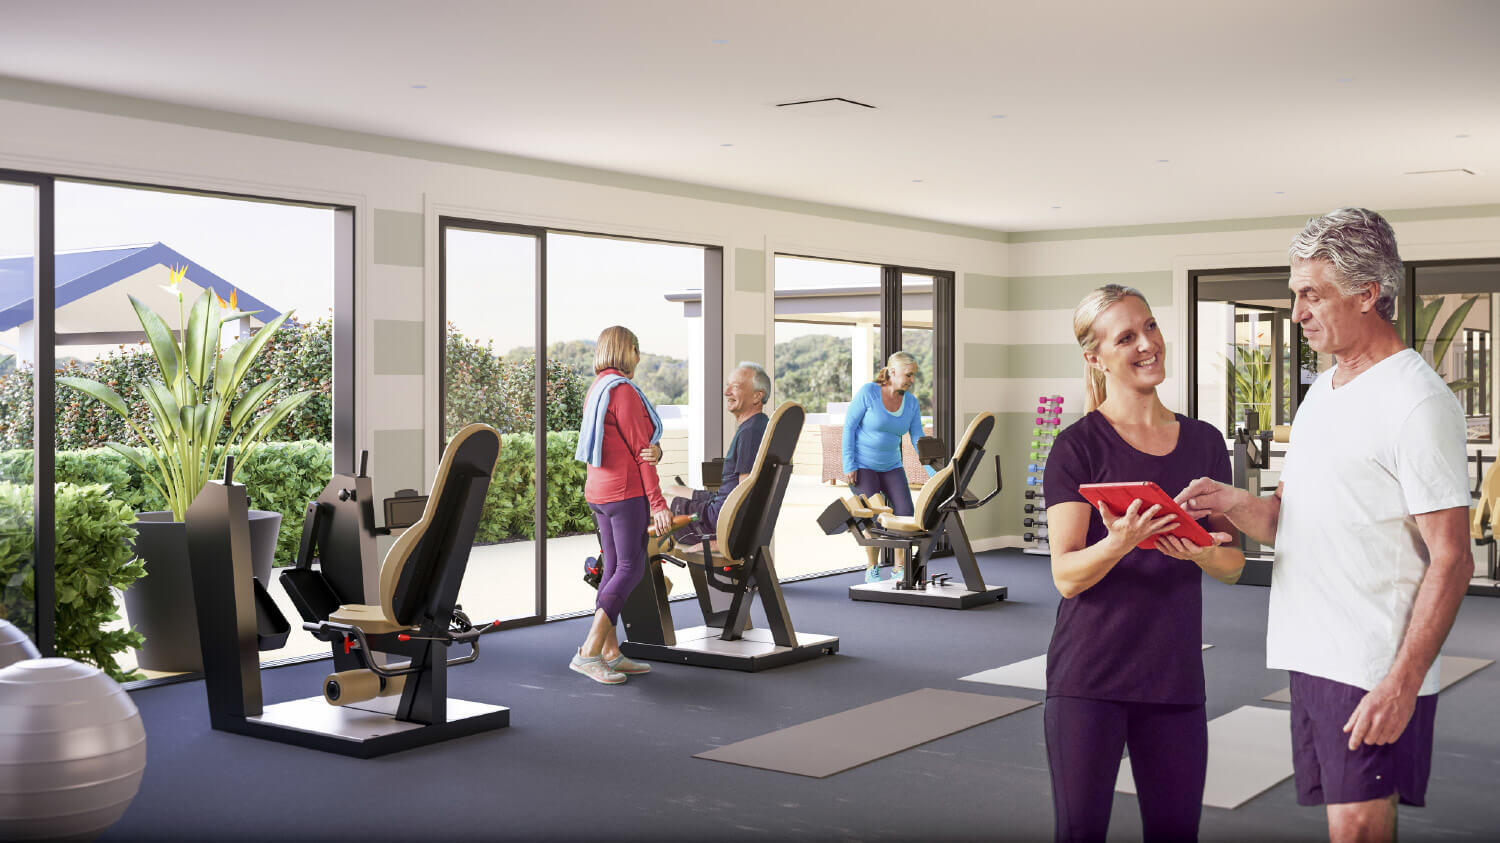 residents staying fit at the gym in Soulworks Wellness Centre